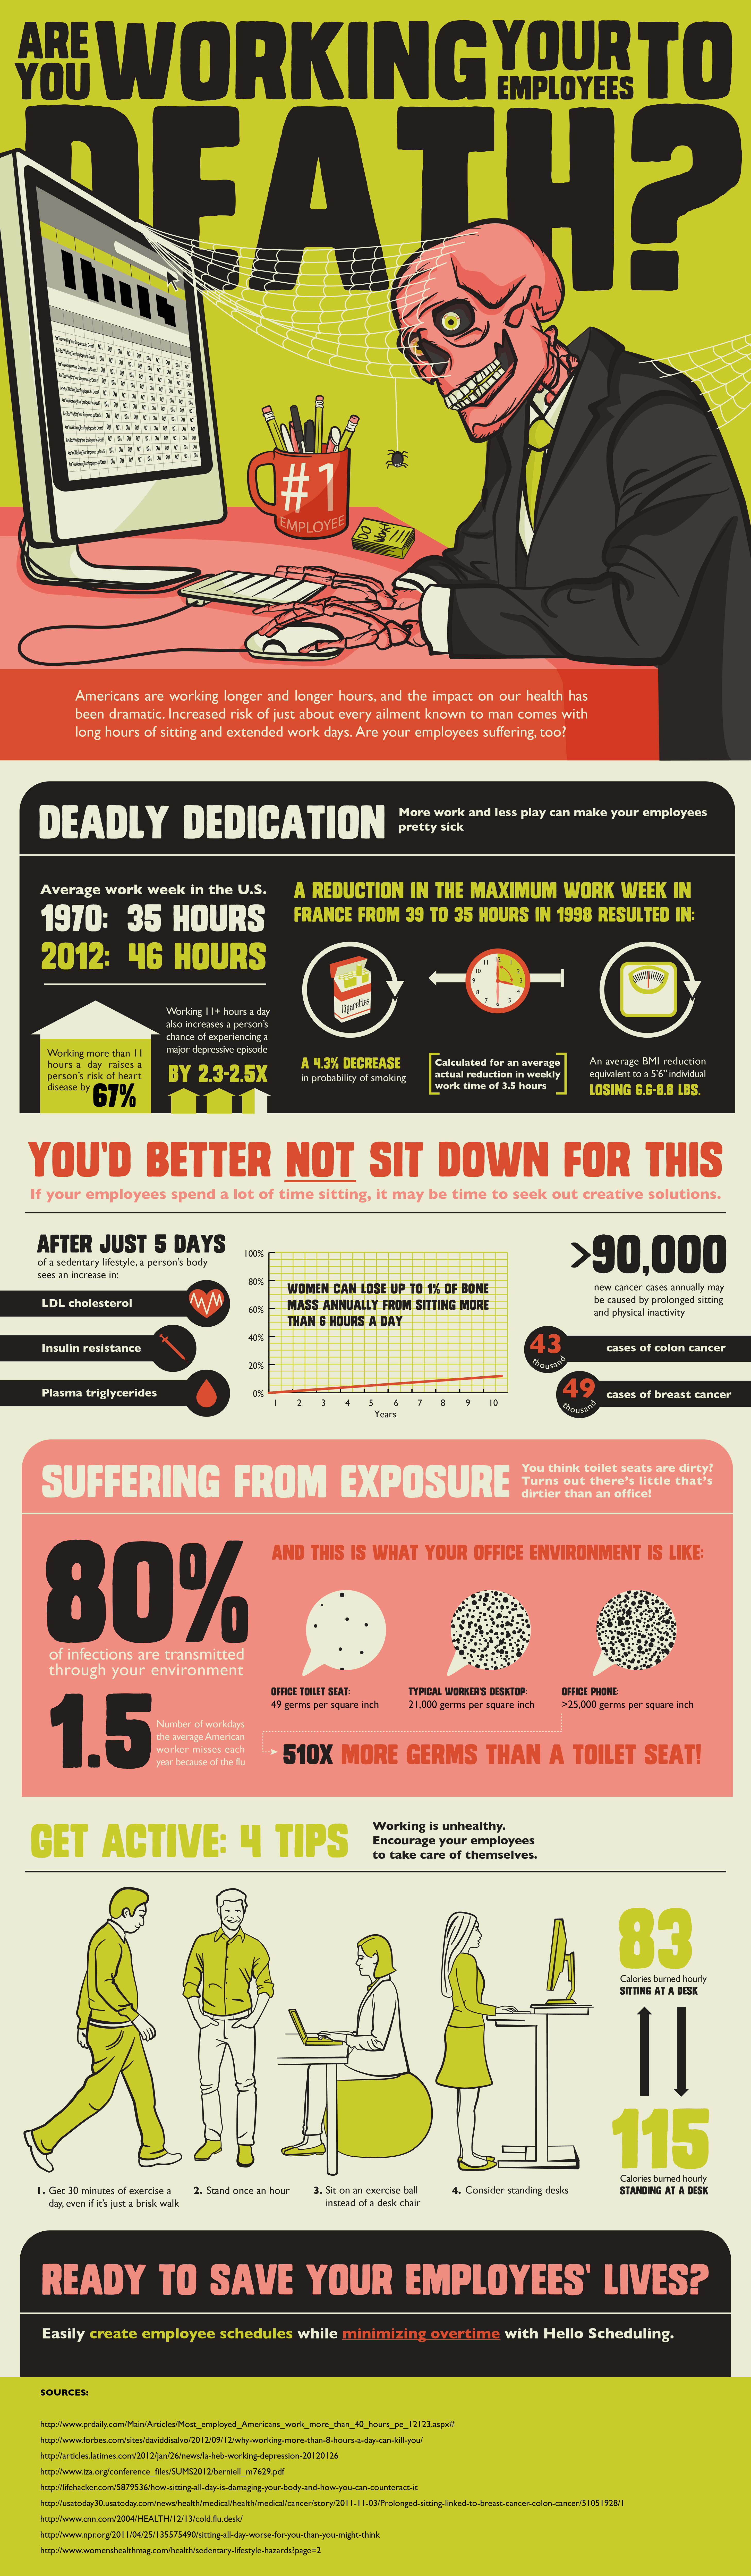 Are you working your employees to death? infographic poster